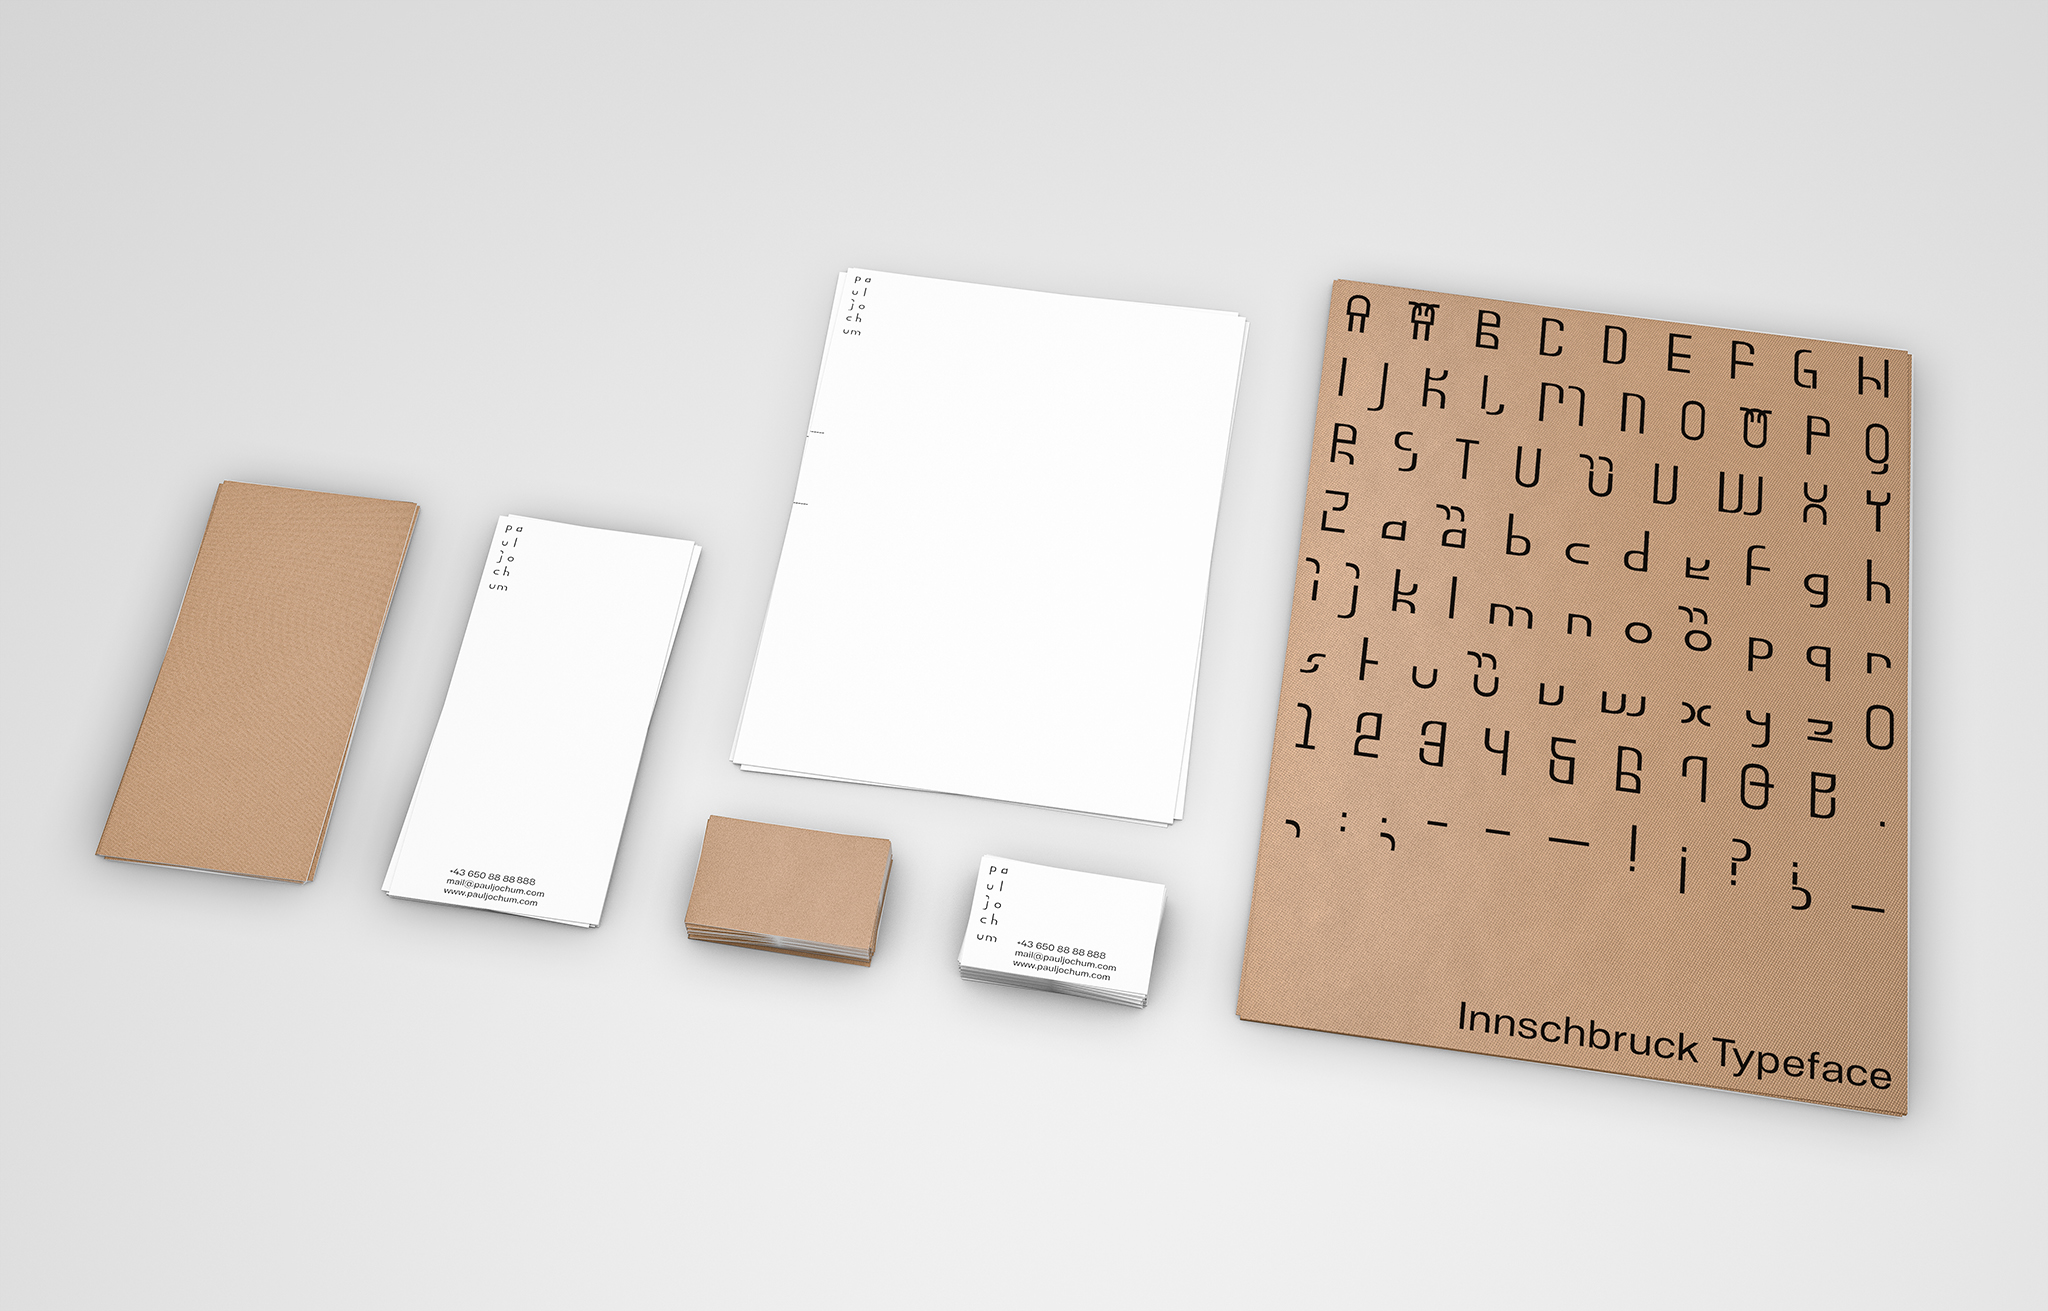 Daniel-Stuhlpfarrer_Visual-Communication_Graphic-Design_Corporate-Identity-Paul-Jochum_1_Stationery